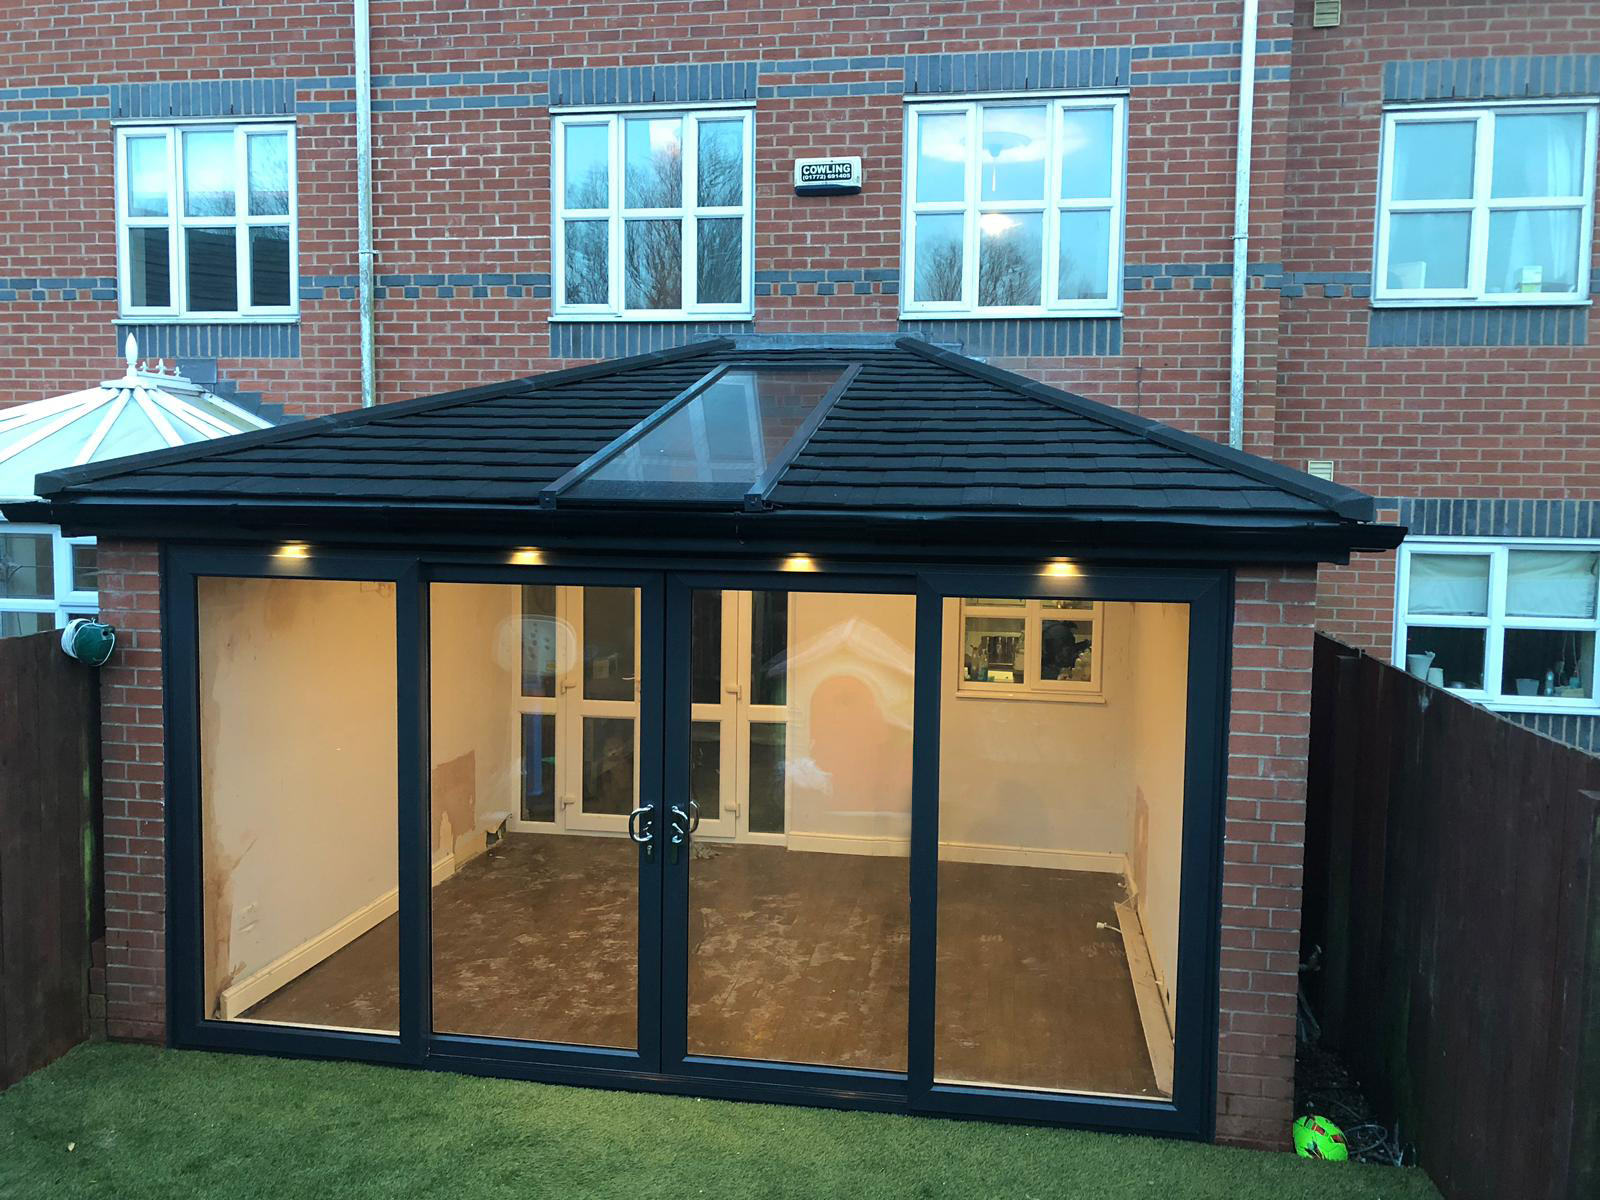 Tile Effect Roof and UPVC Windows & Doors in Anthracite